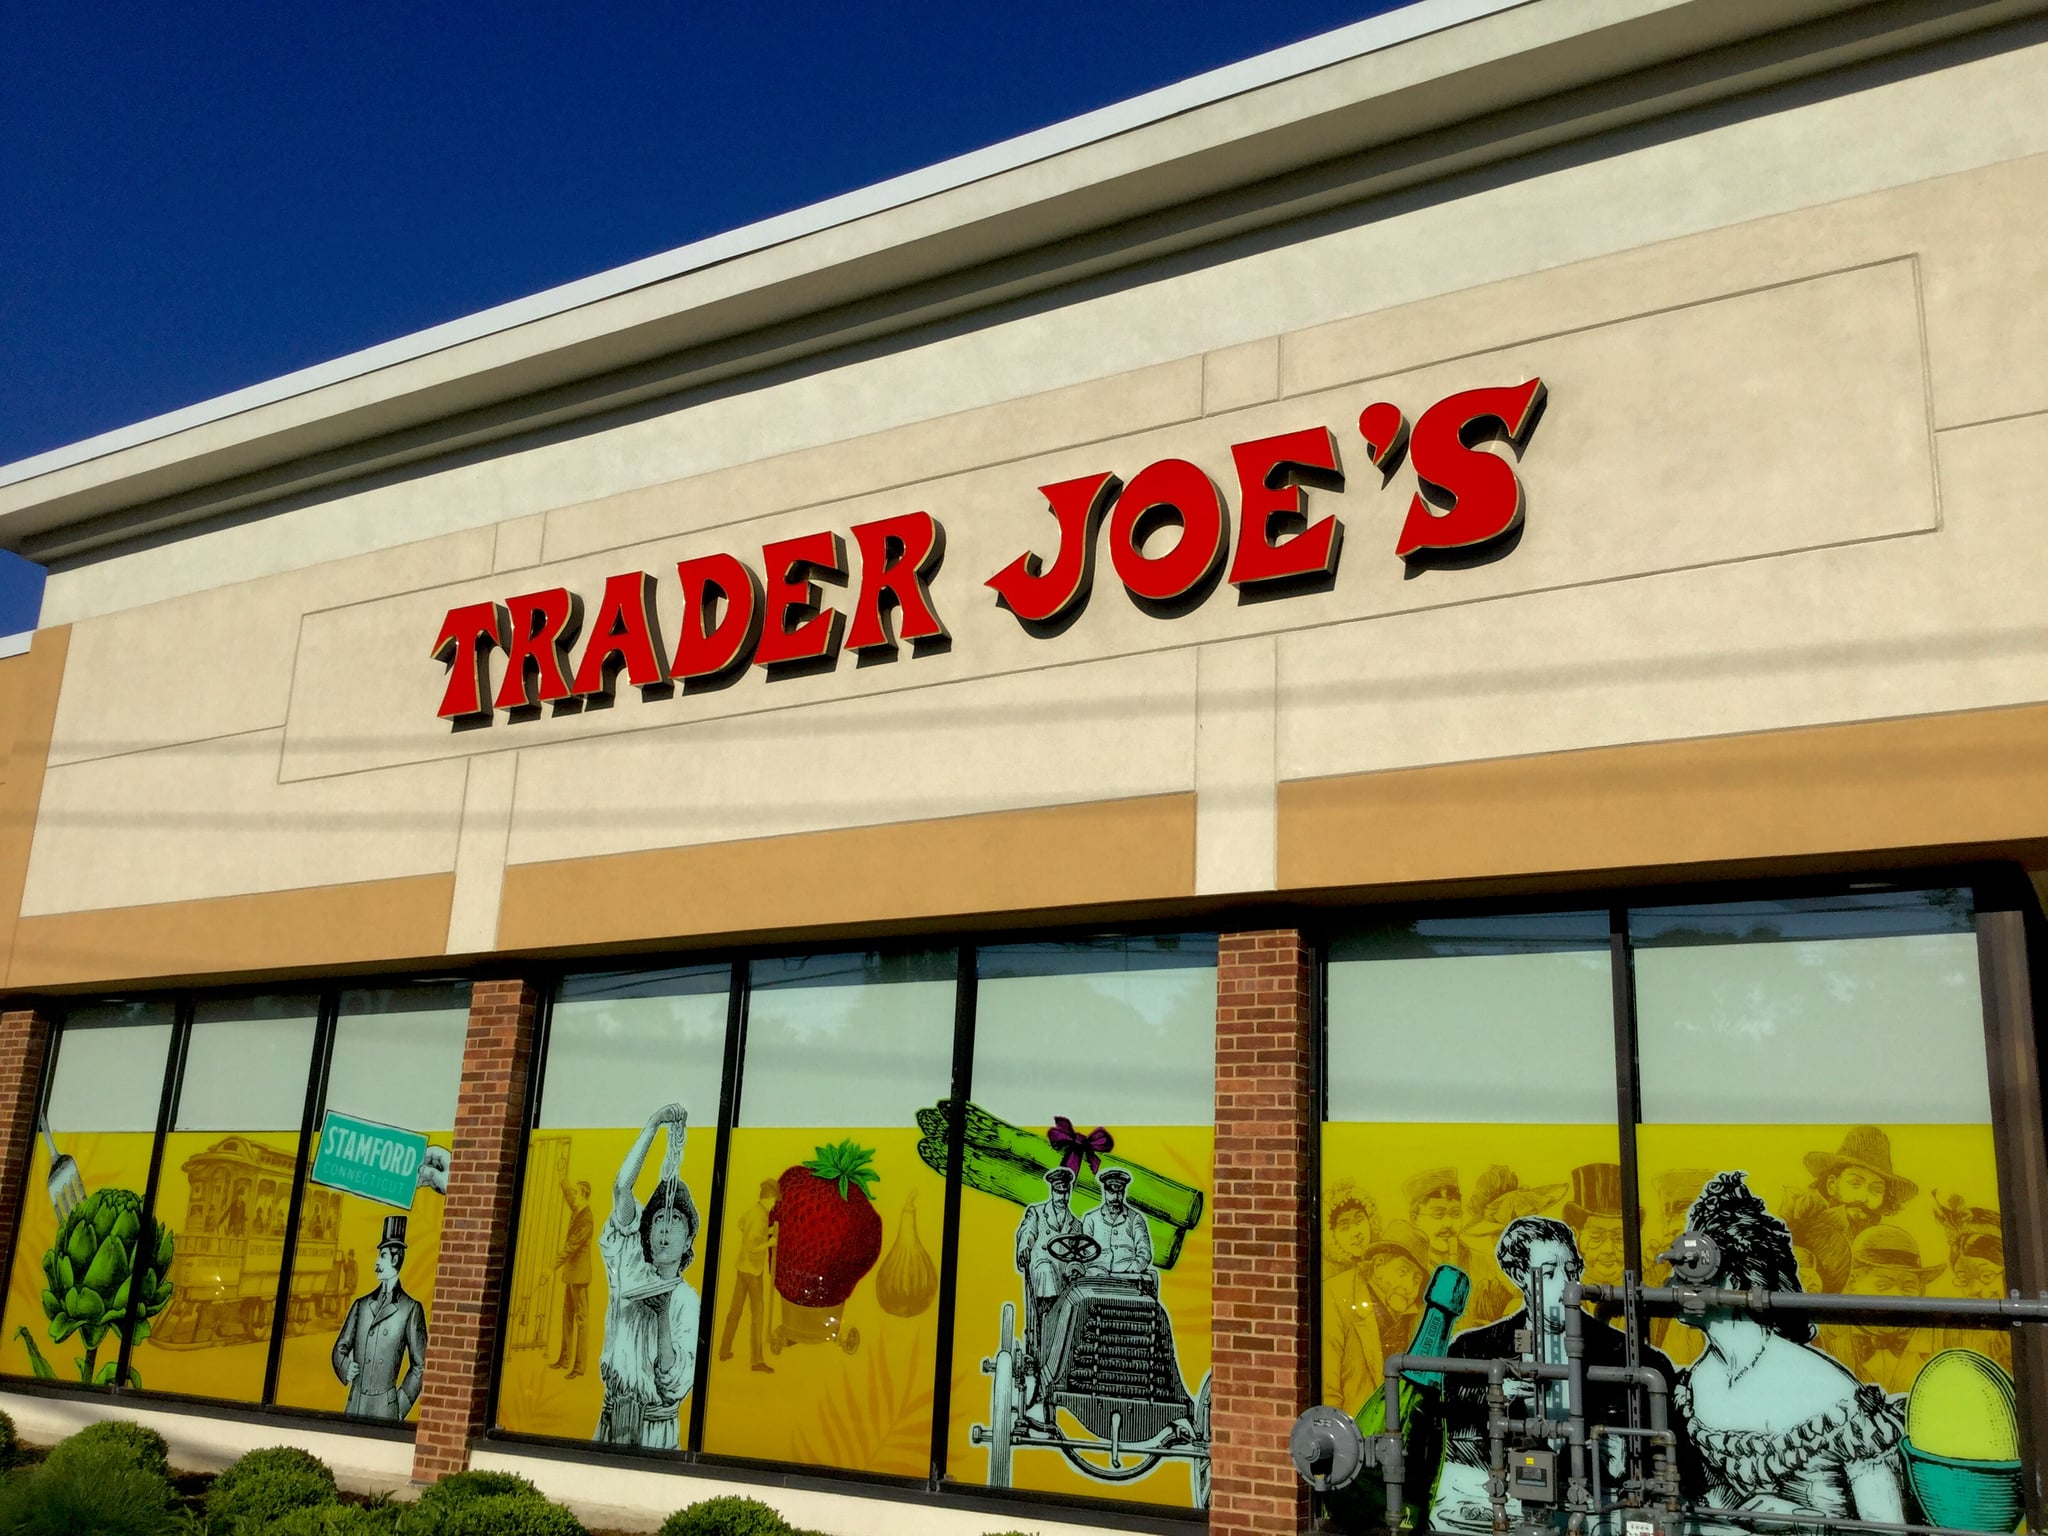 Trader Joes Employees Reveal Their 8 Best Shopping Tips Trader Joes Employees Reveal Their 8 Best Shopping Tips new pics